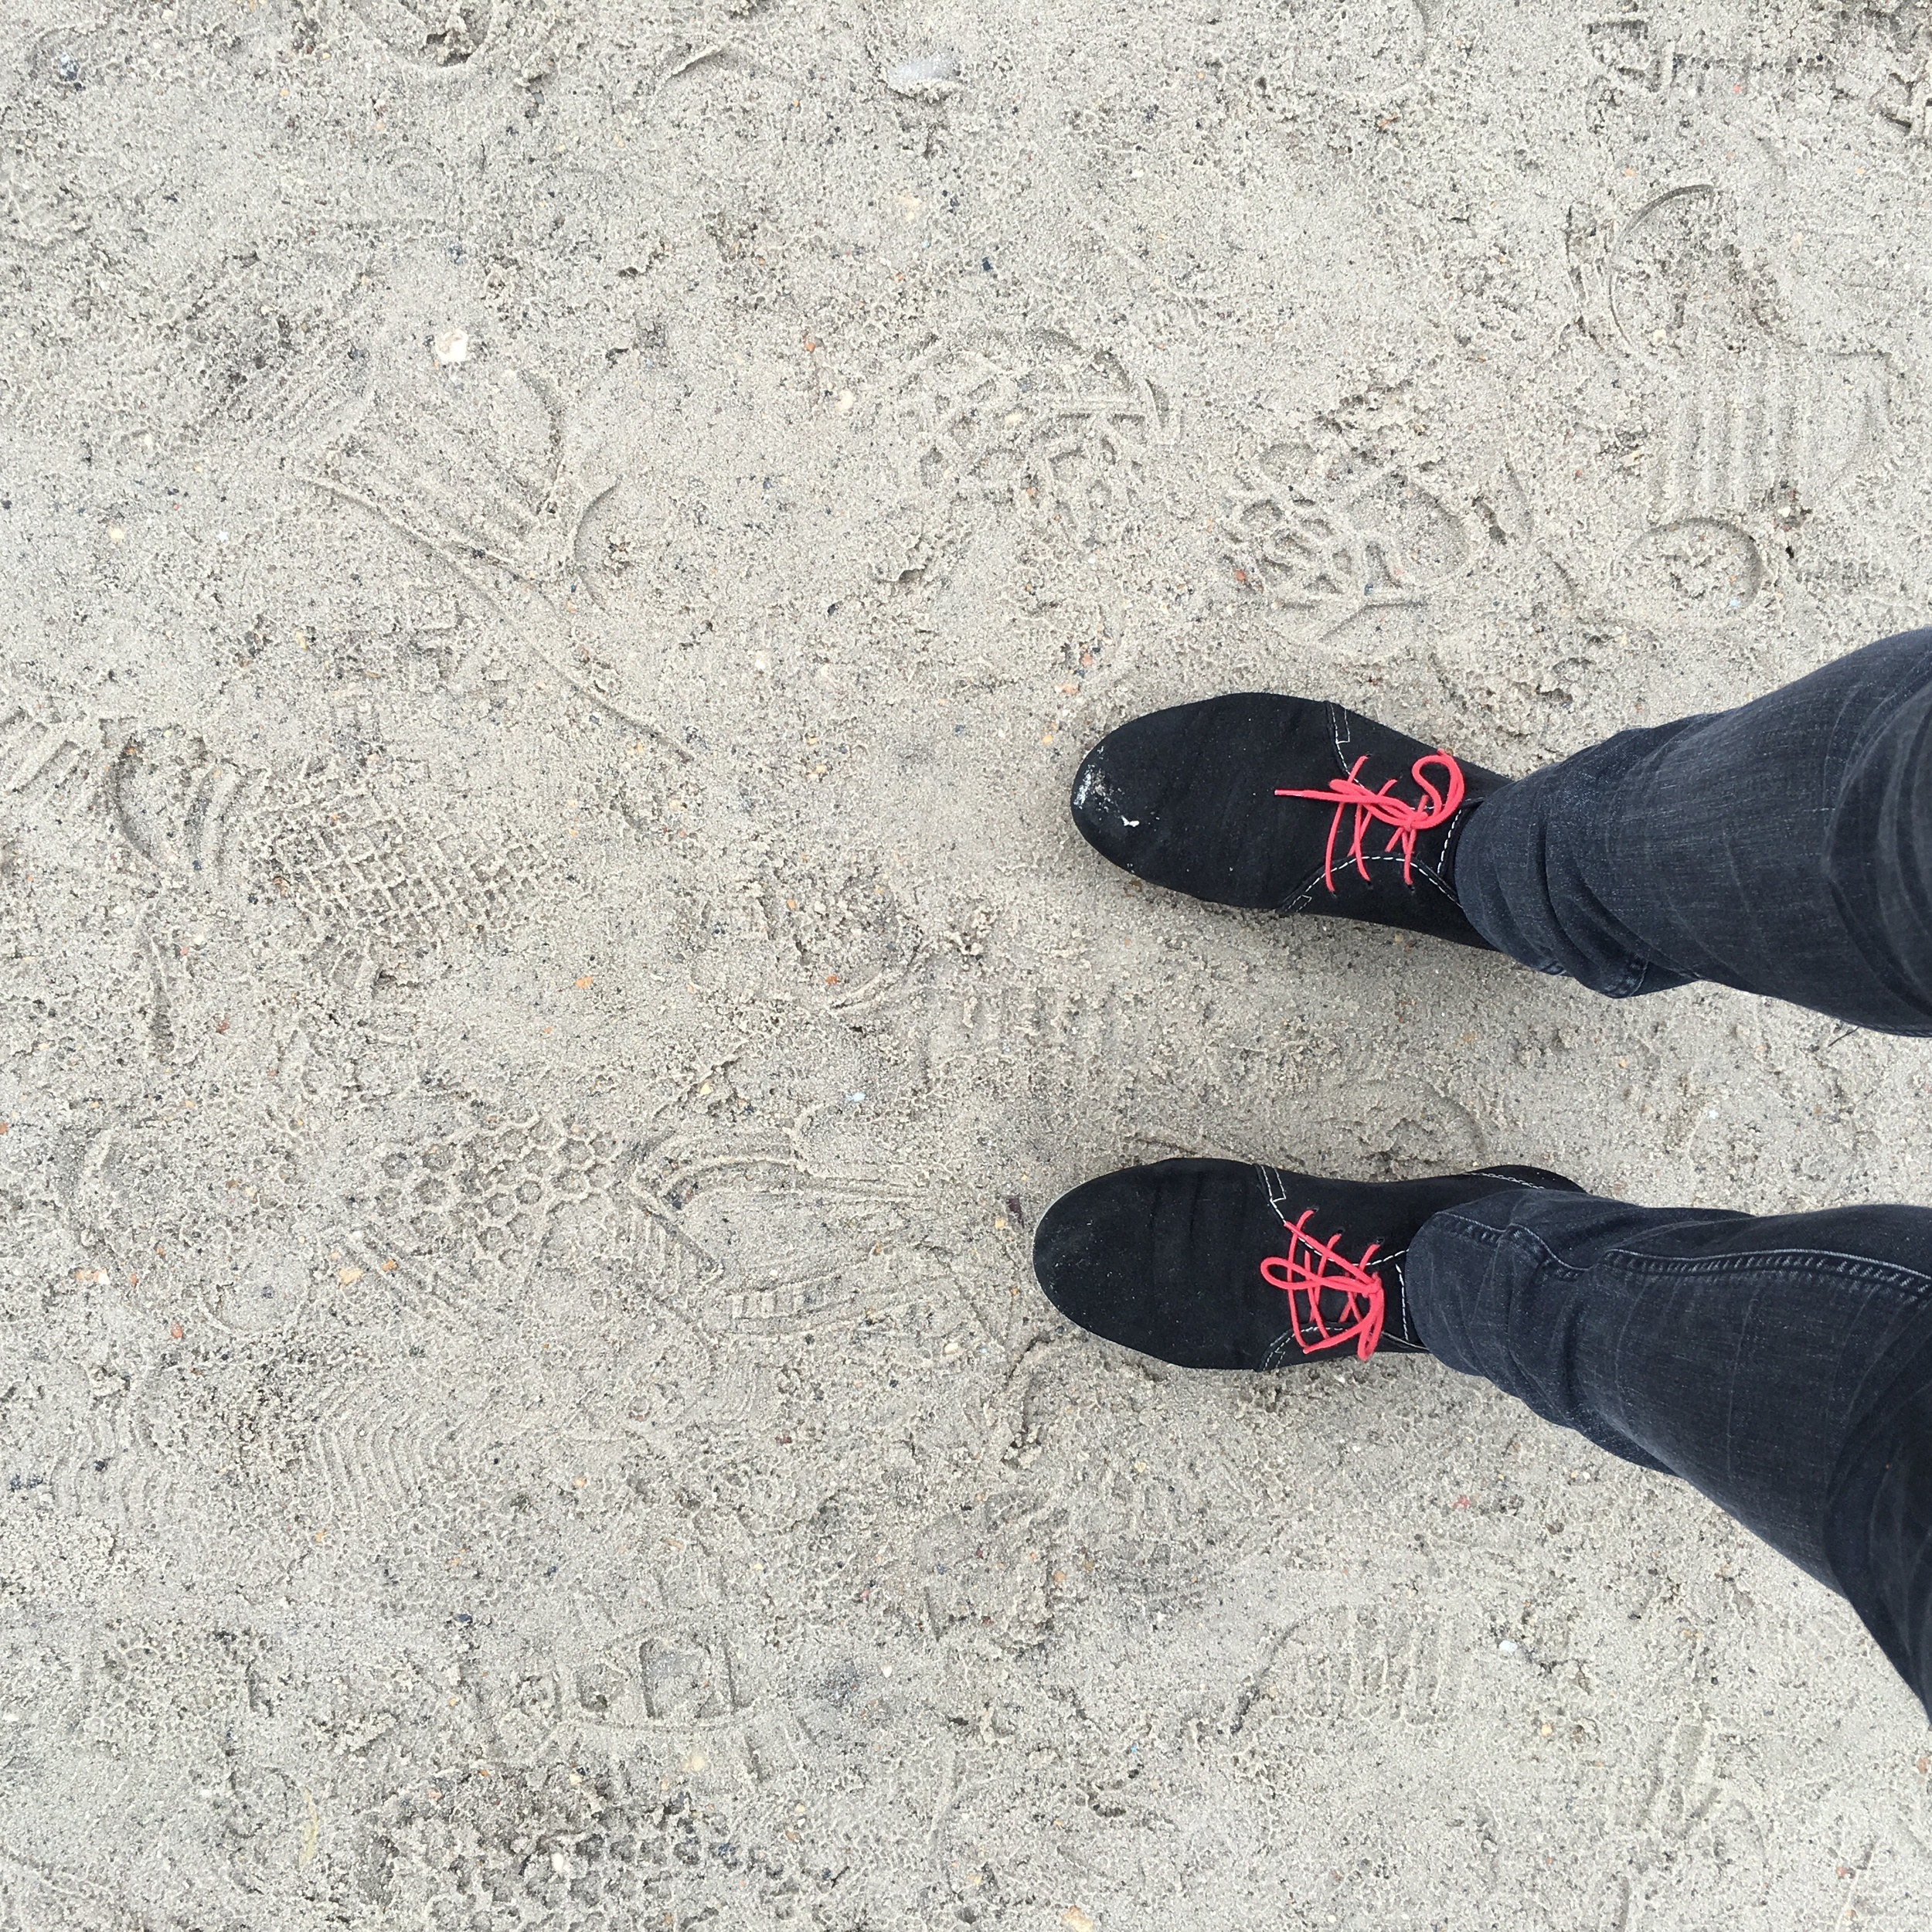 Black suede shoes on wet sand